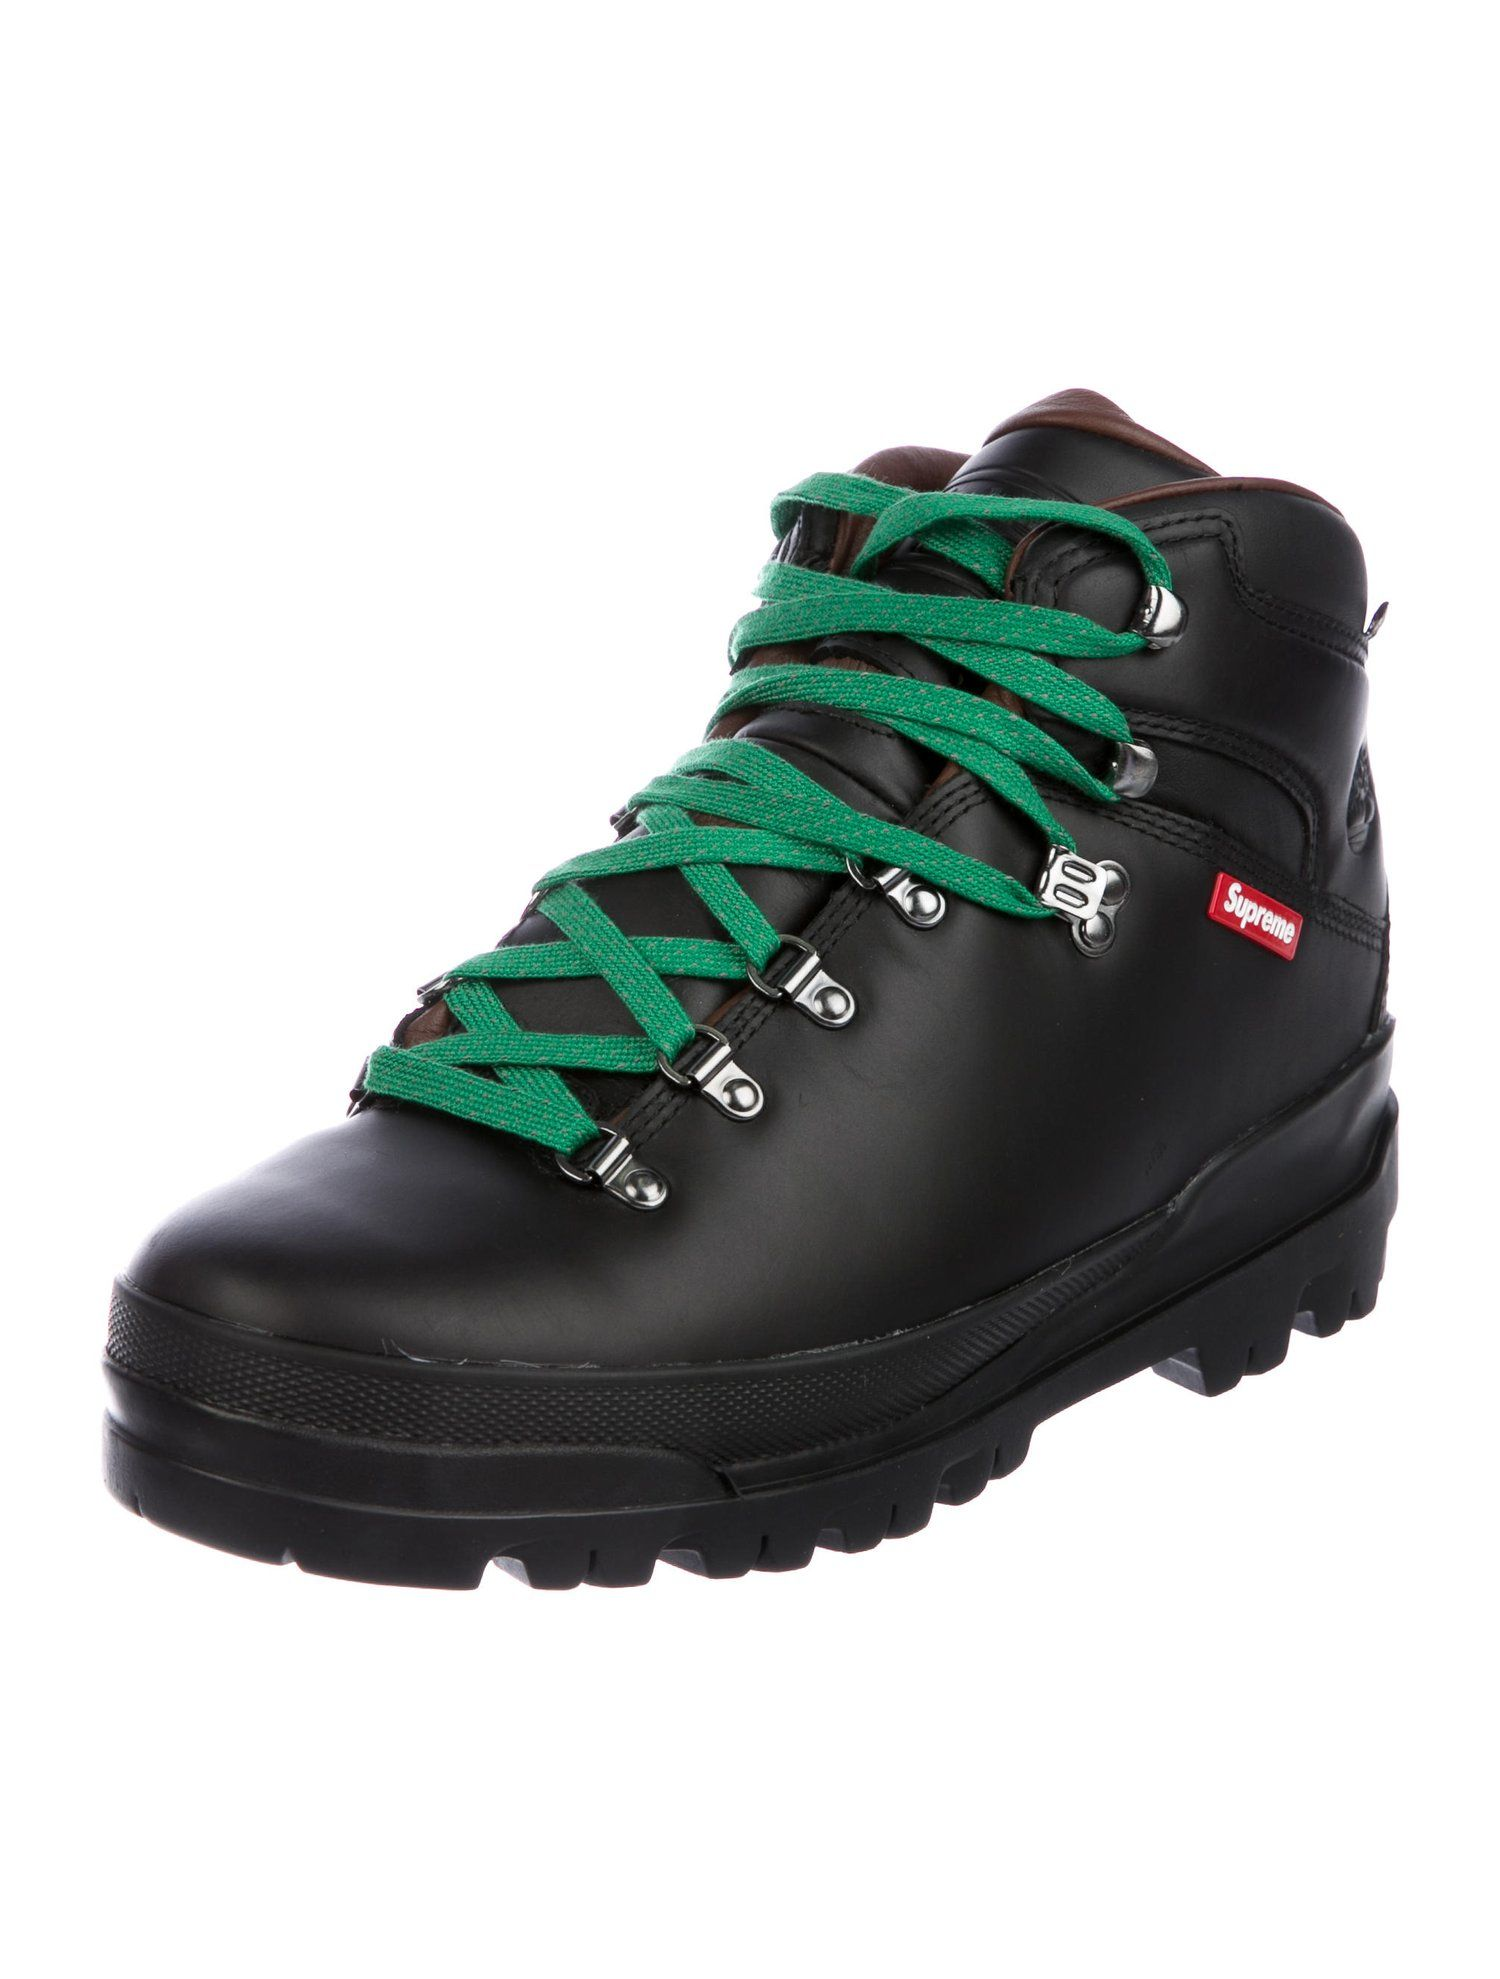 2018 World Hiker Front Country Boot w Tags in 2019